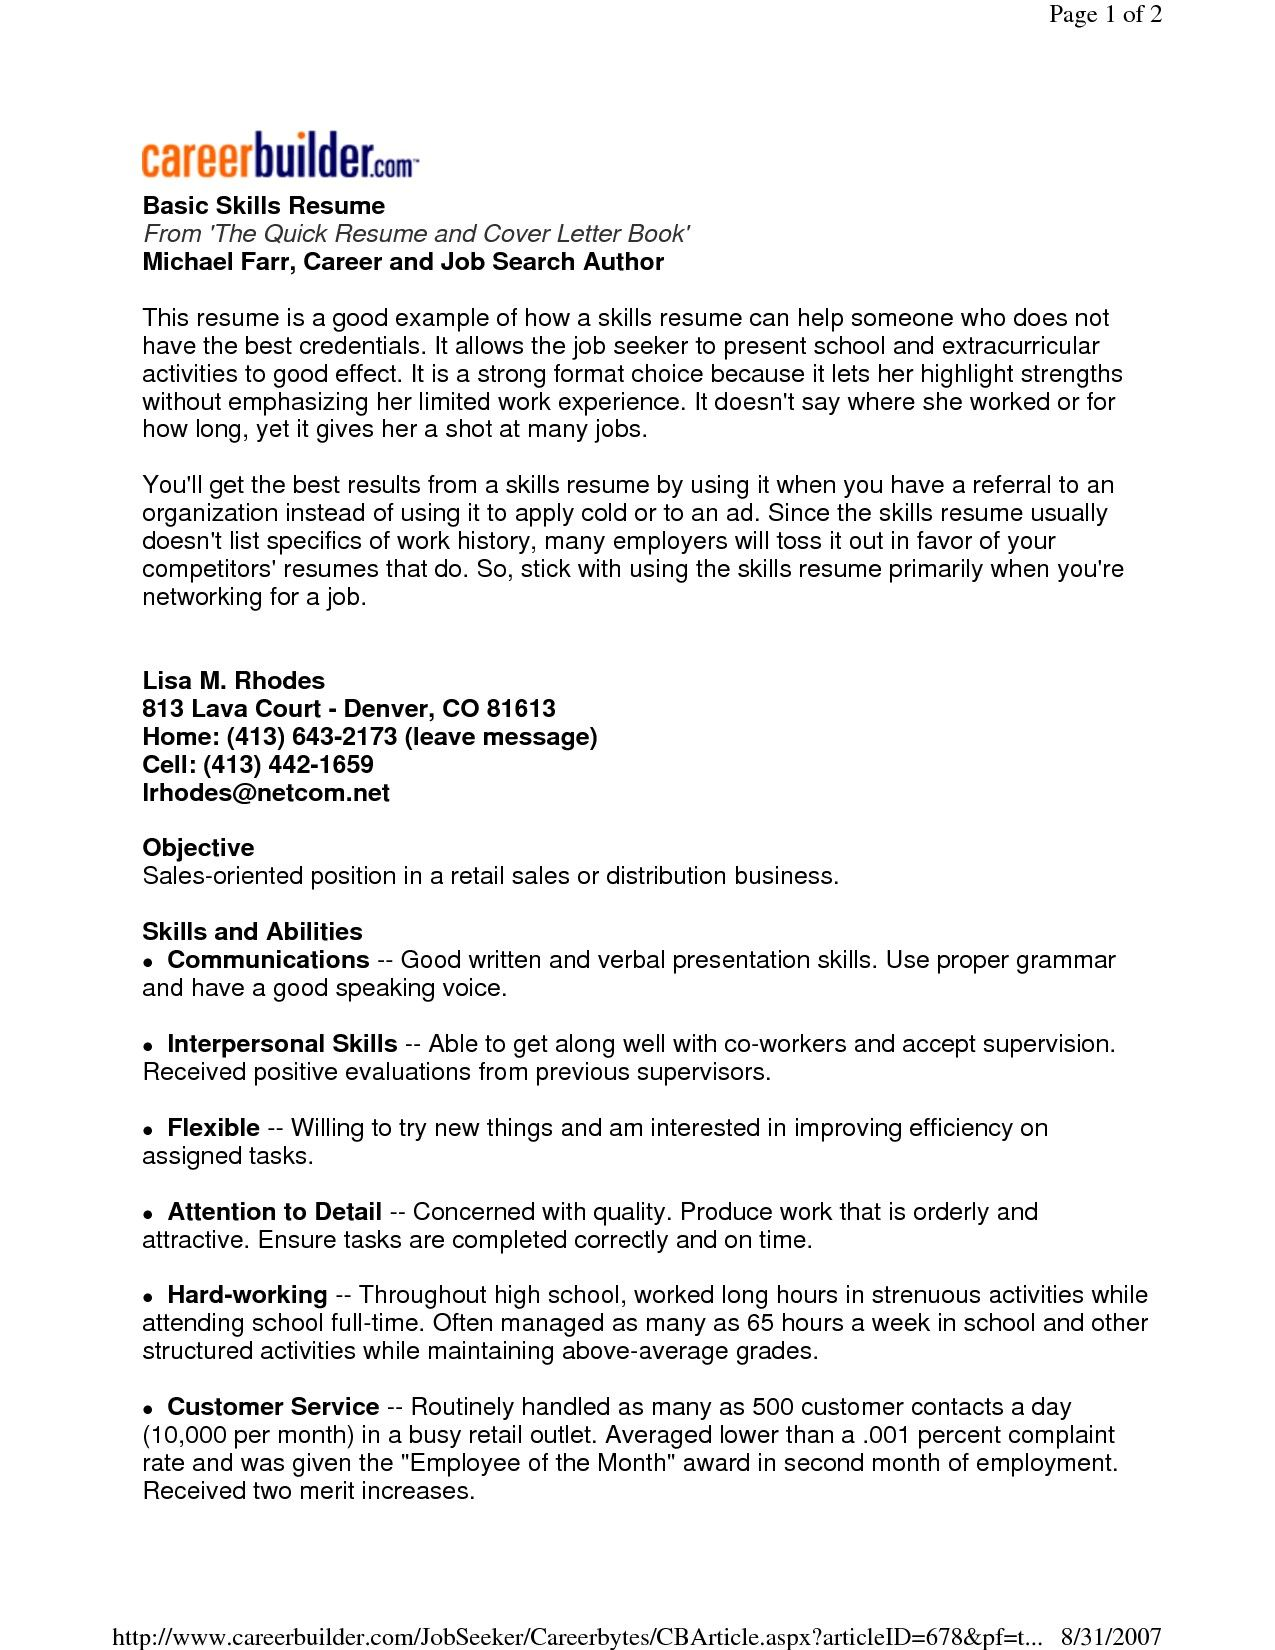 what to write in key skills of cv